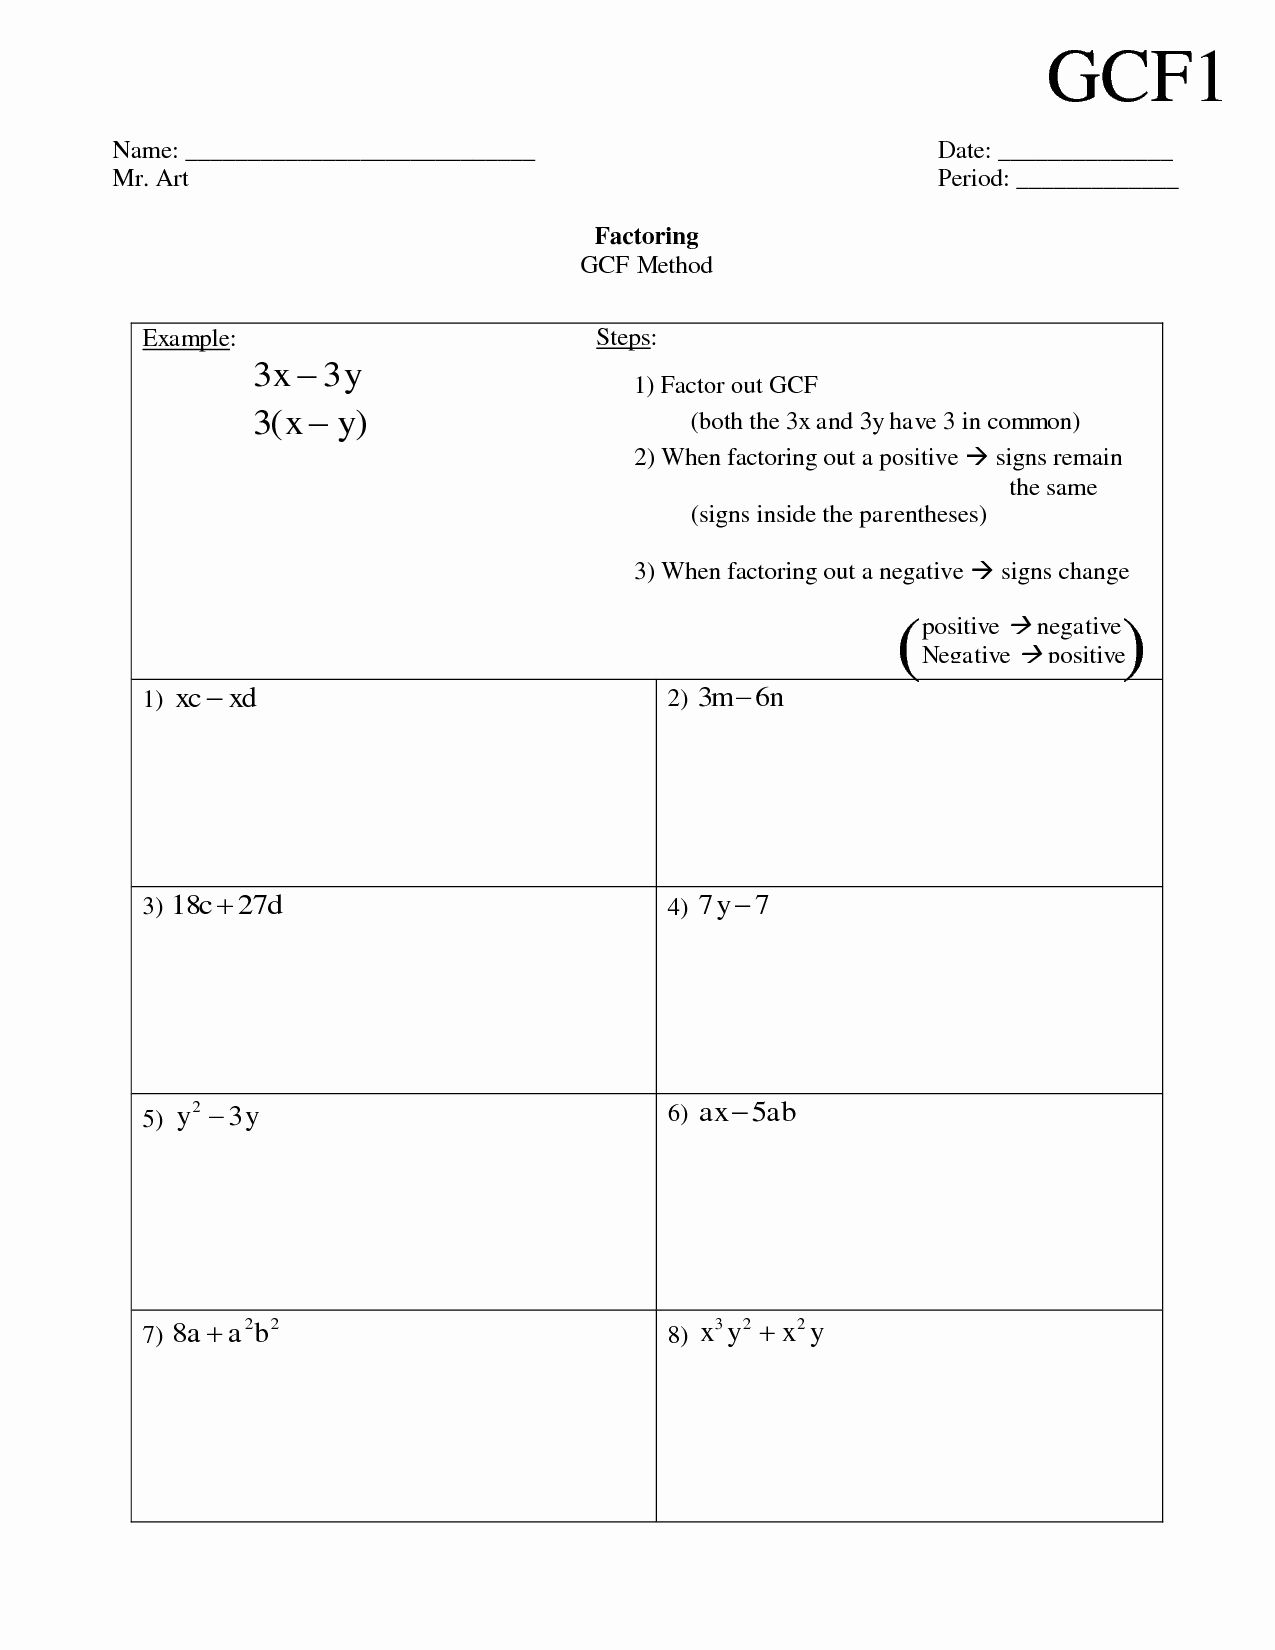 Factoring Greatest Common Factor Worksheet Luxury 17 Best